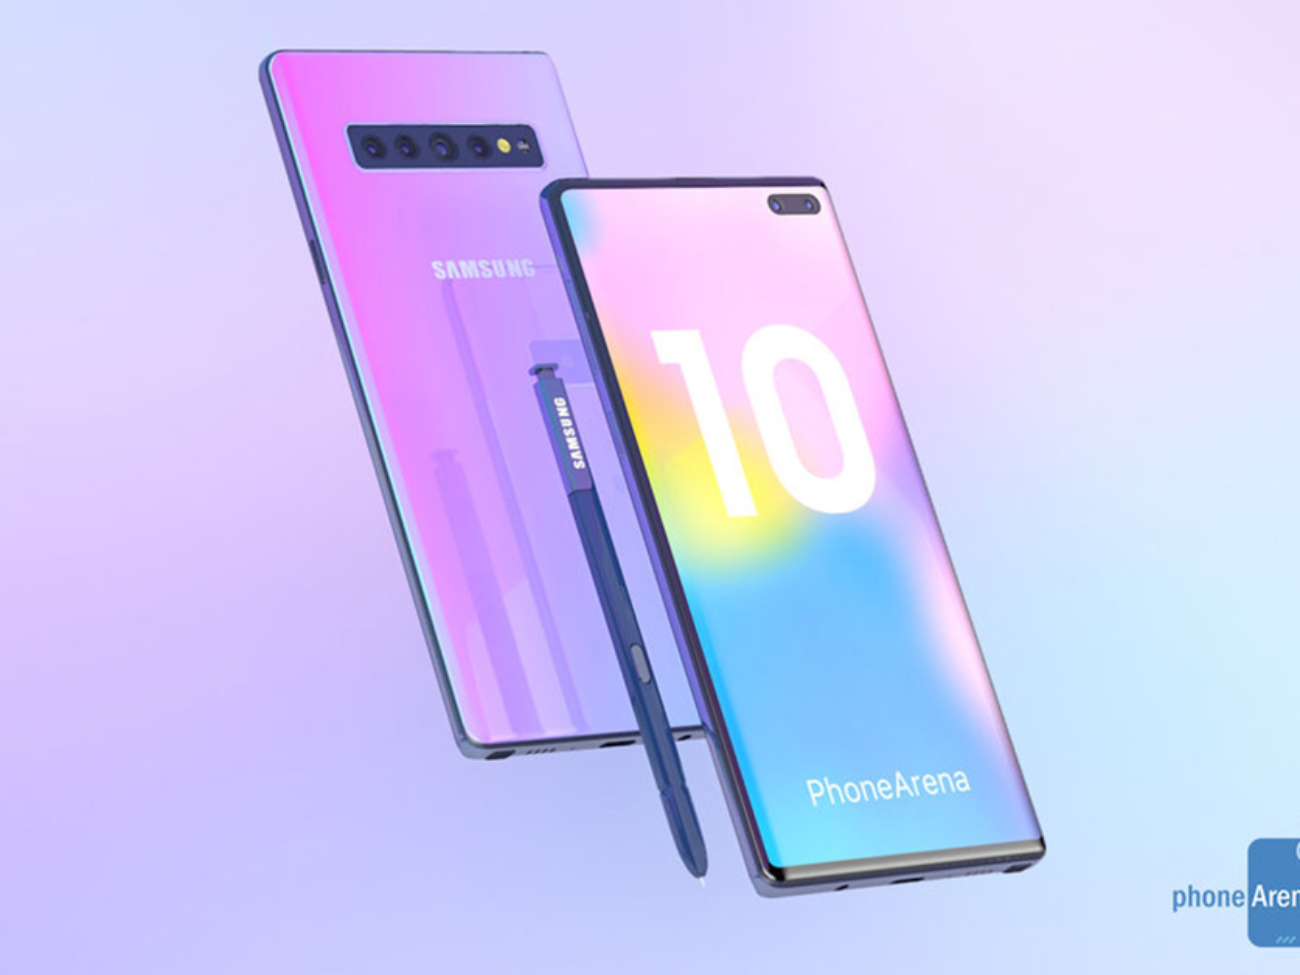 Samsung-Galaxy-Note-10-visualized-in-new-3D-renders